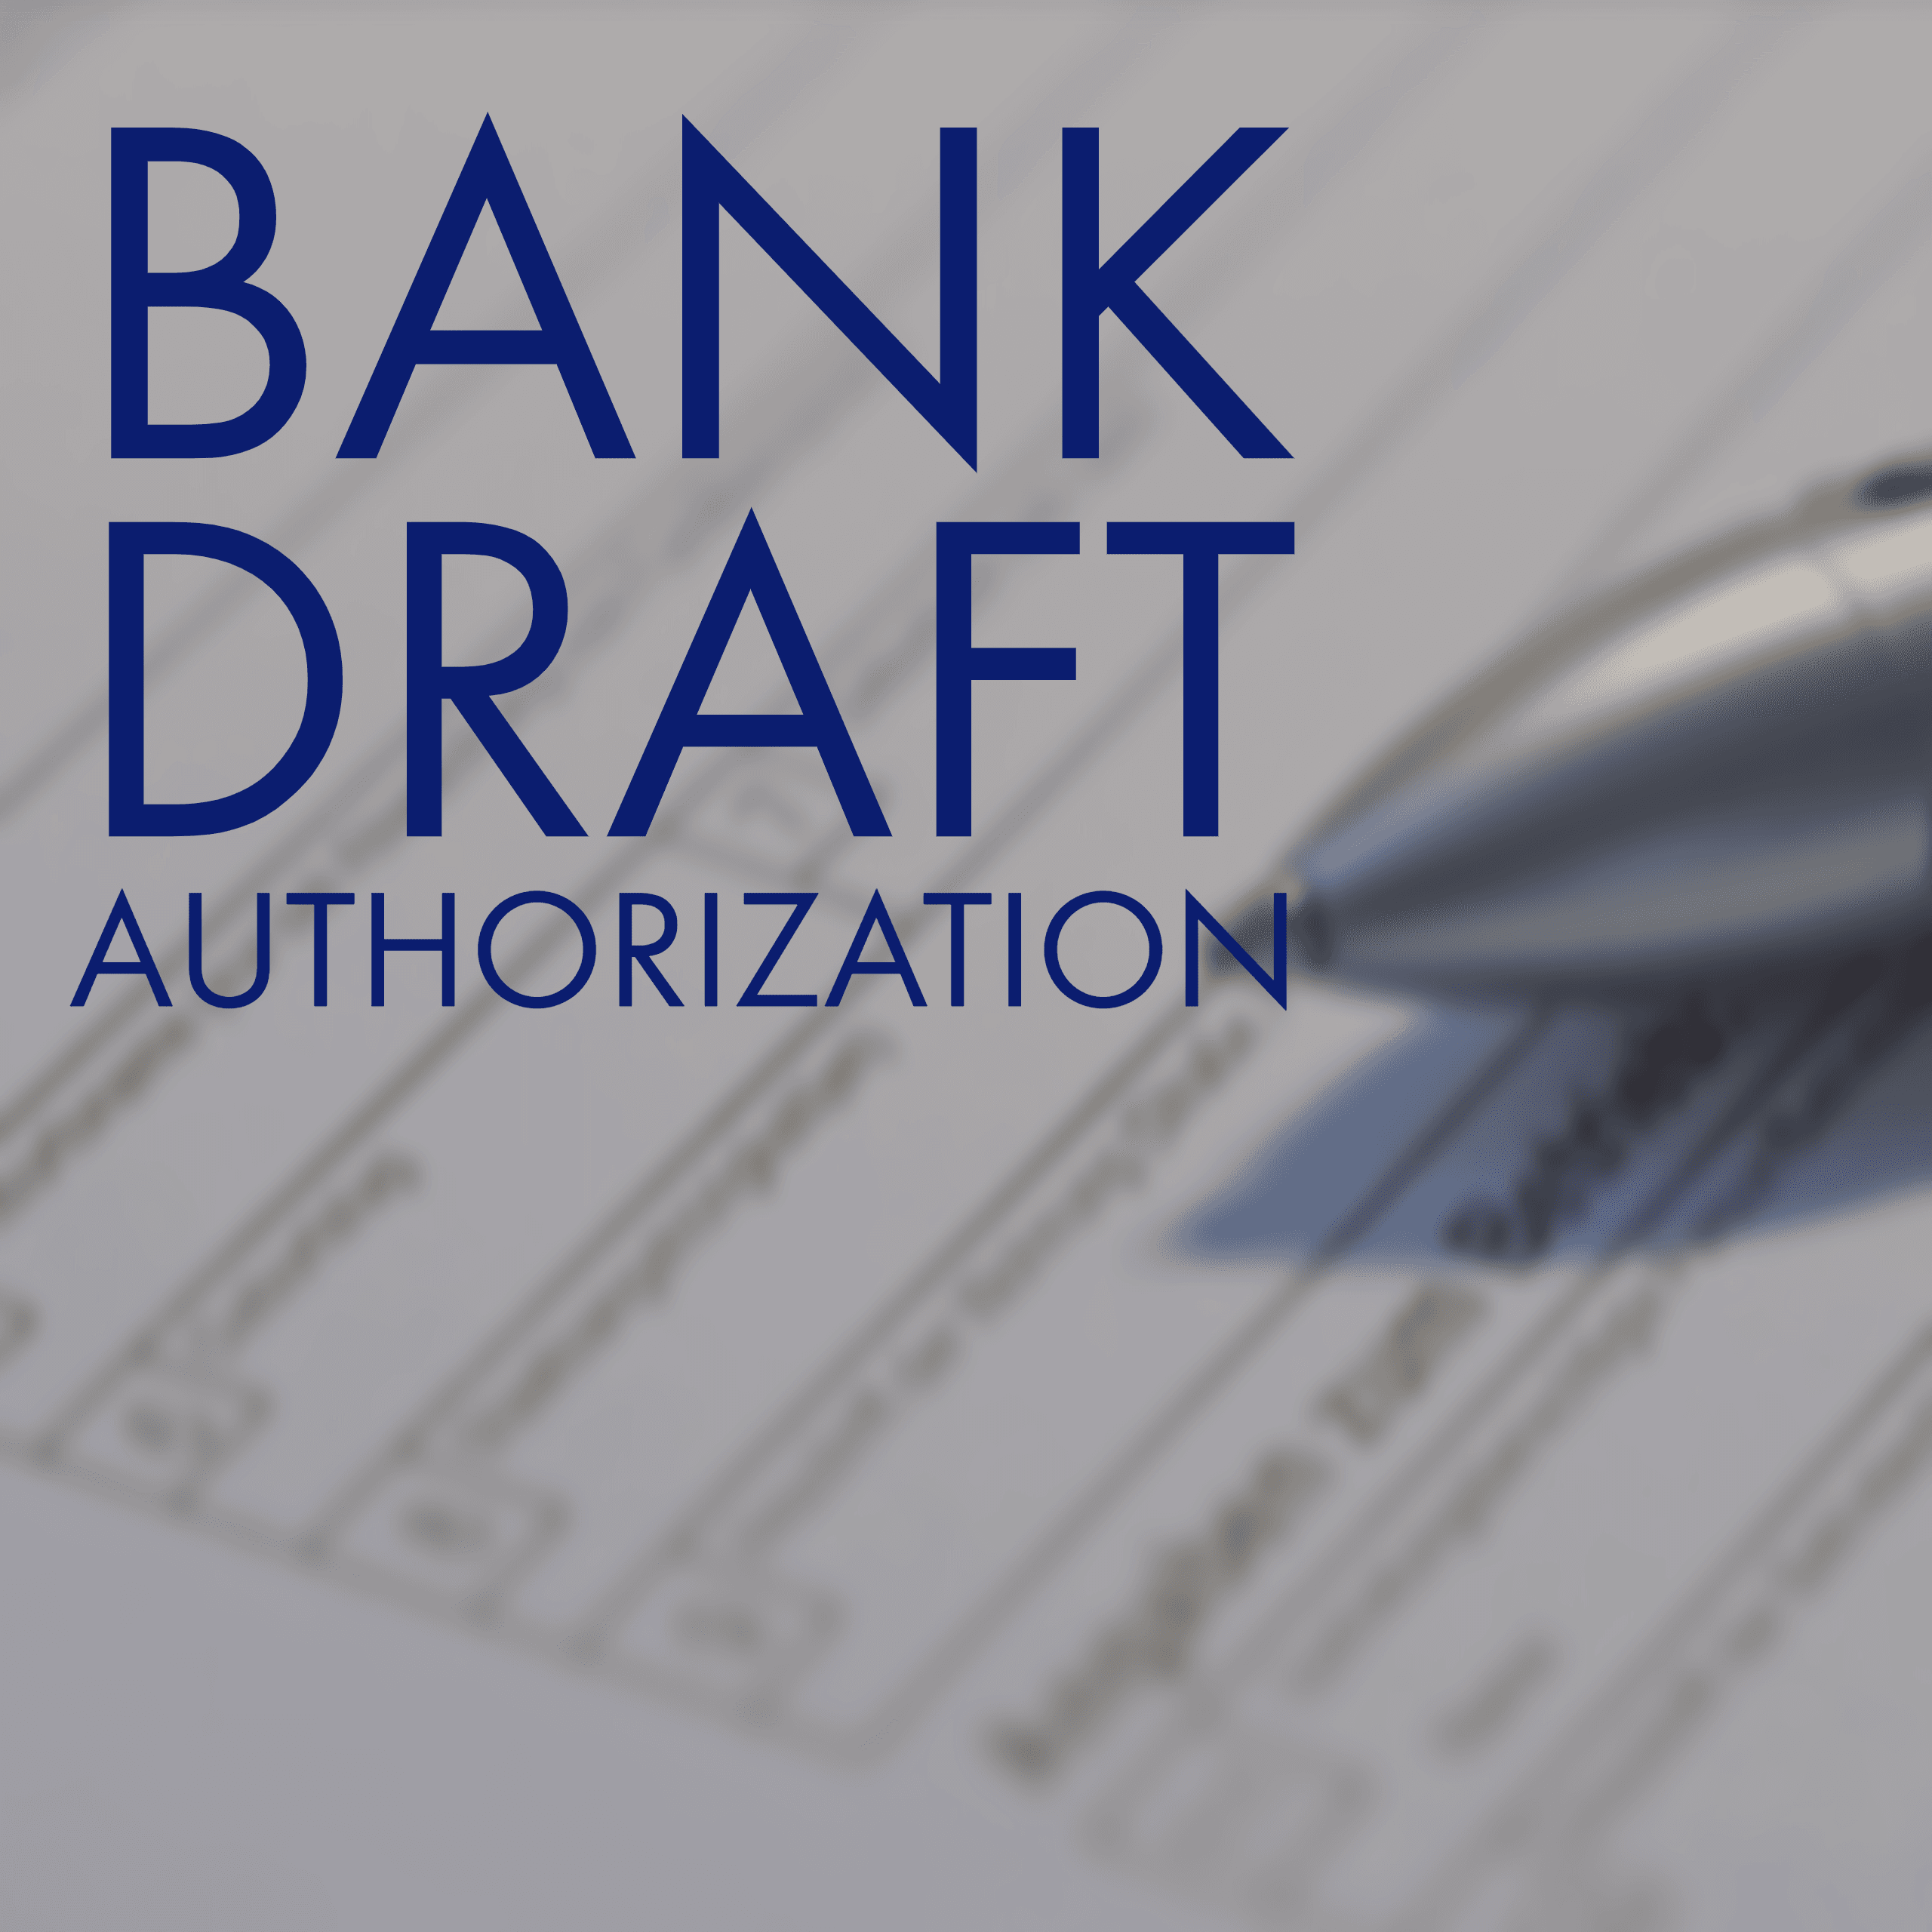 Auto Bank Draft Opens in new window